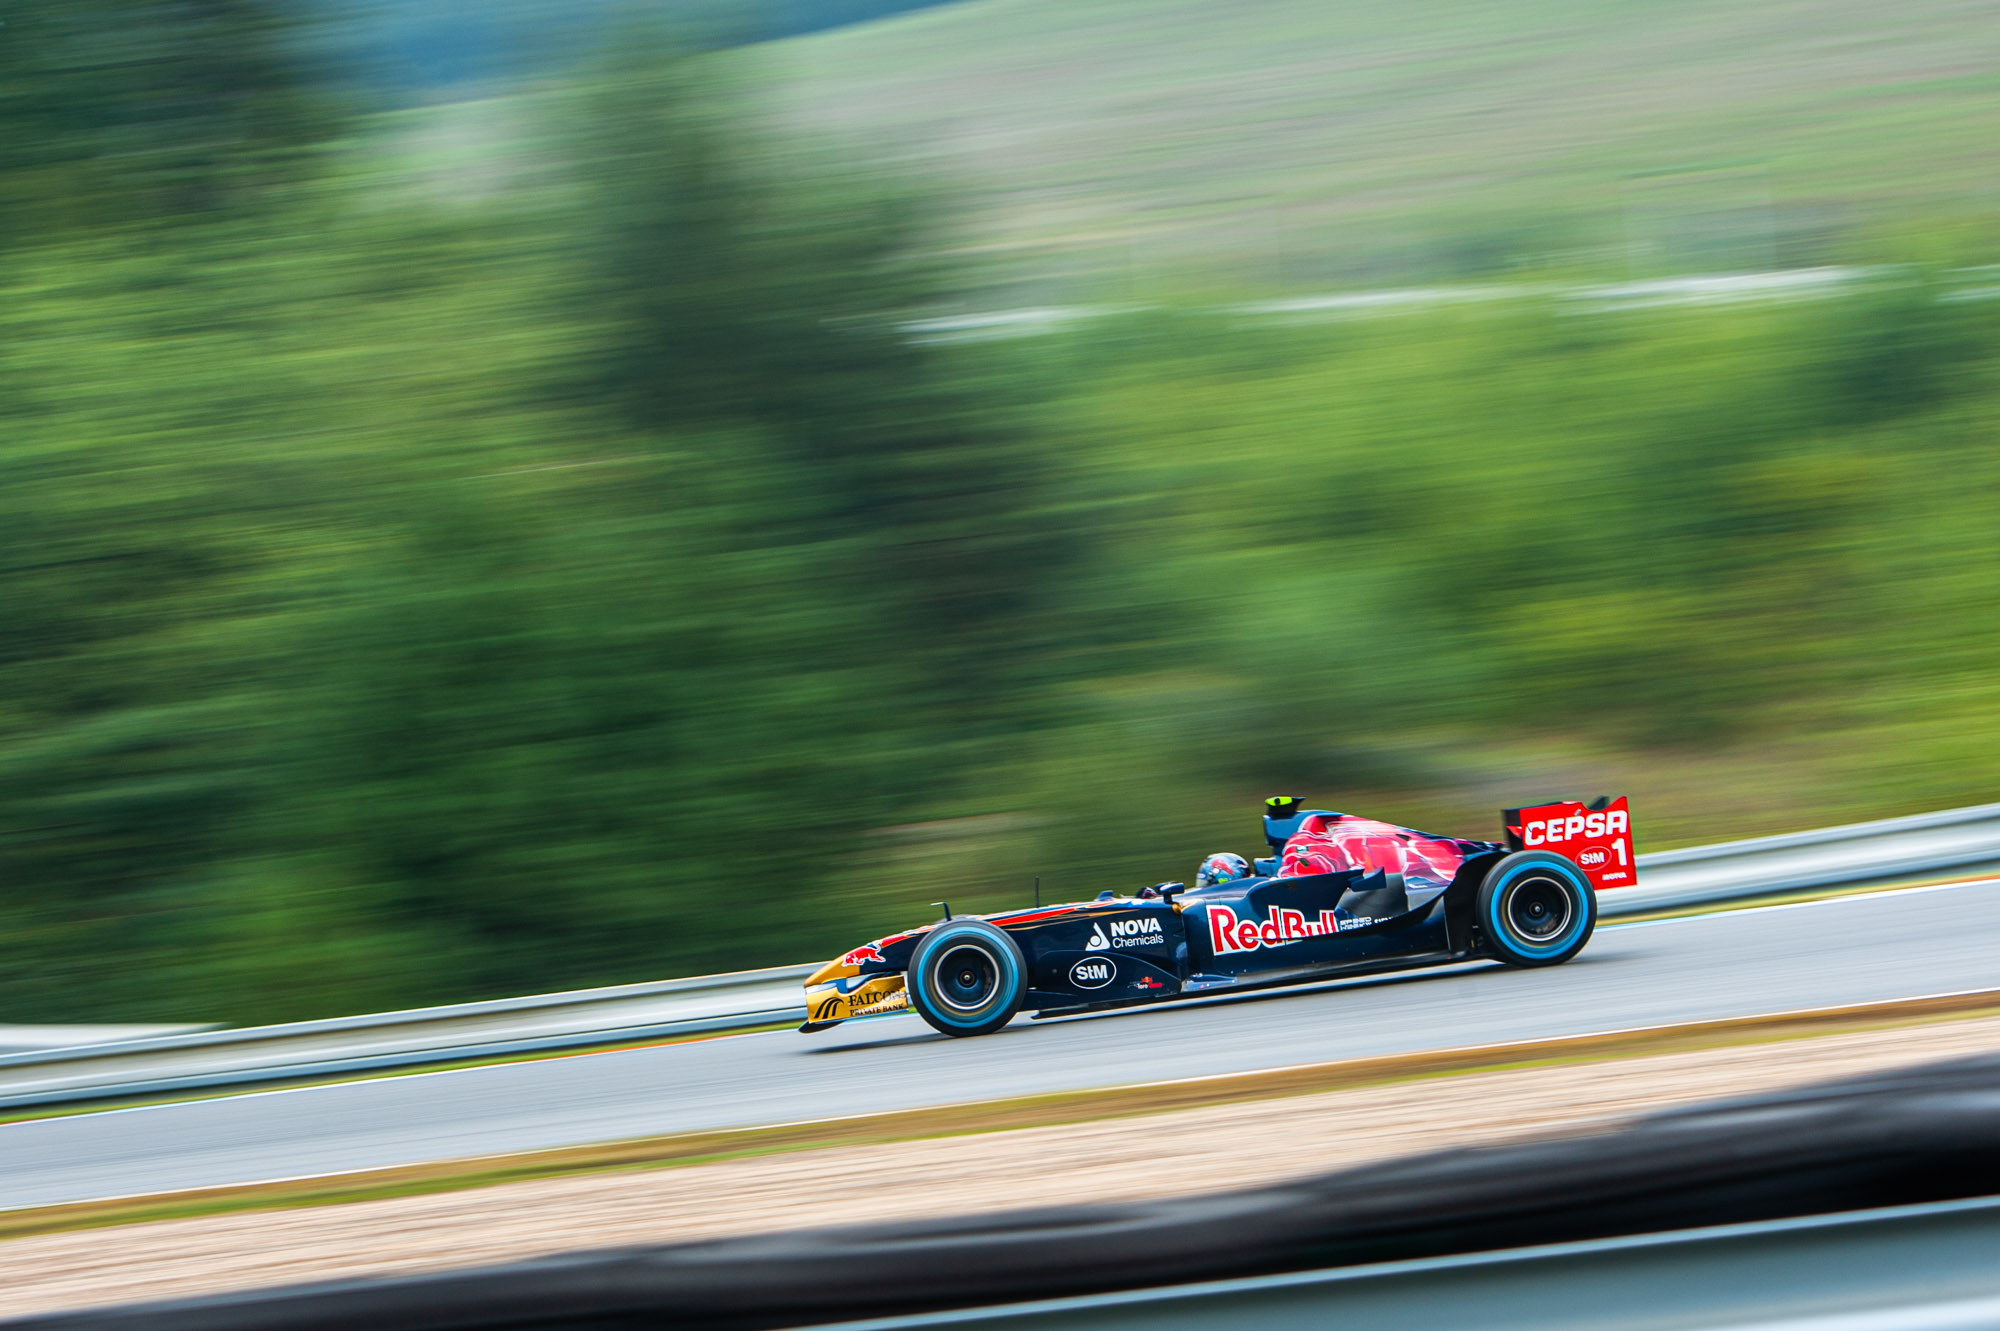 Ingo Gerstl flys by in his Toro Rosso STR 1 in 2019 Brno Qualifying